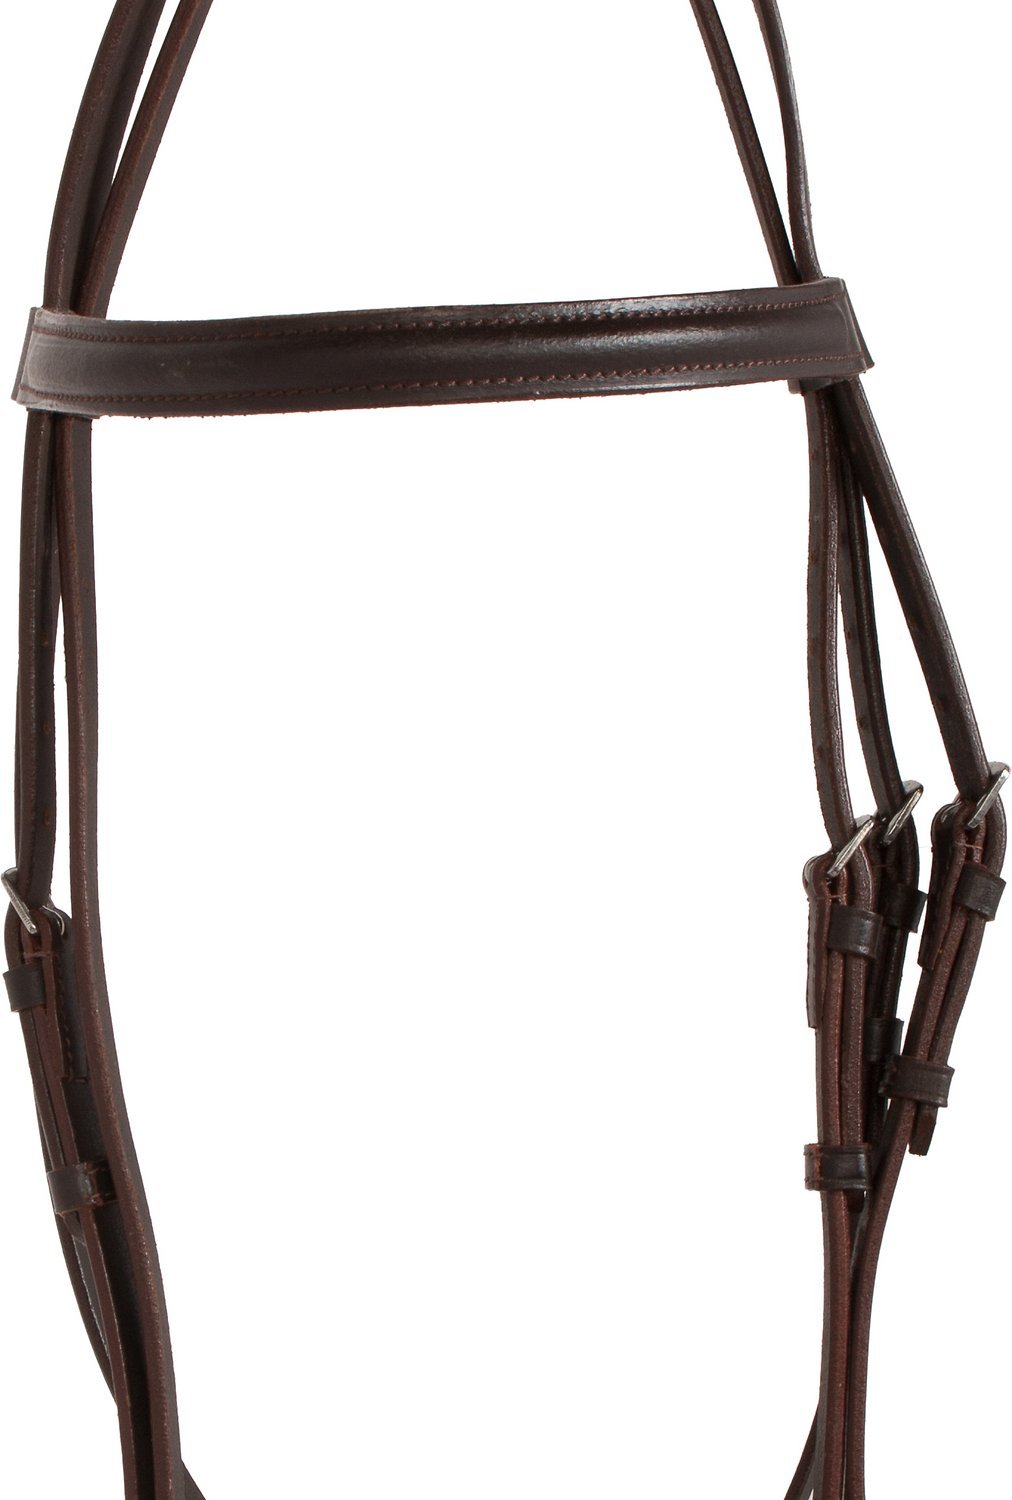 Acerugs All Purpose Dark Brown English Horse Tack Jumping Show Bridle Set With Reins